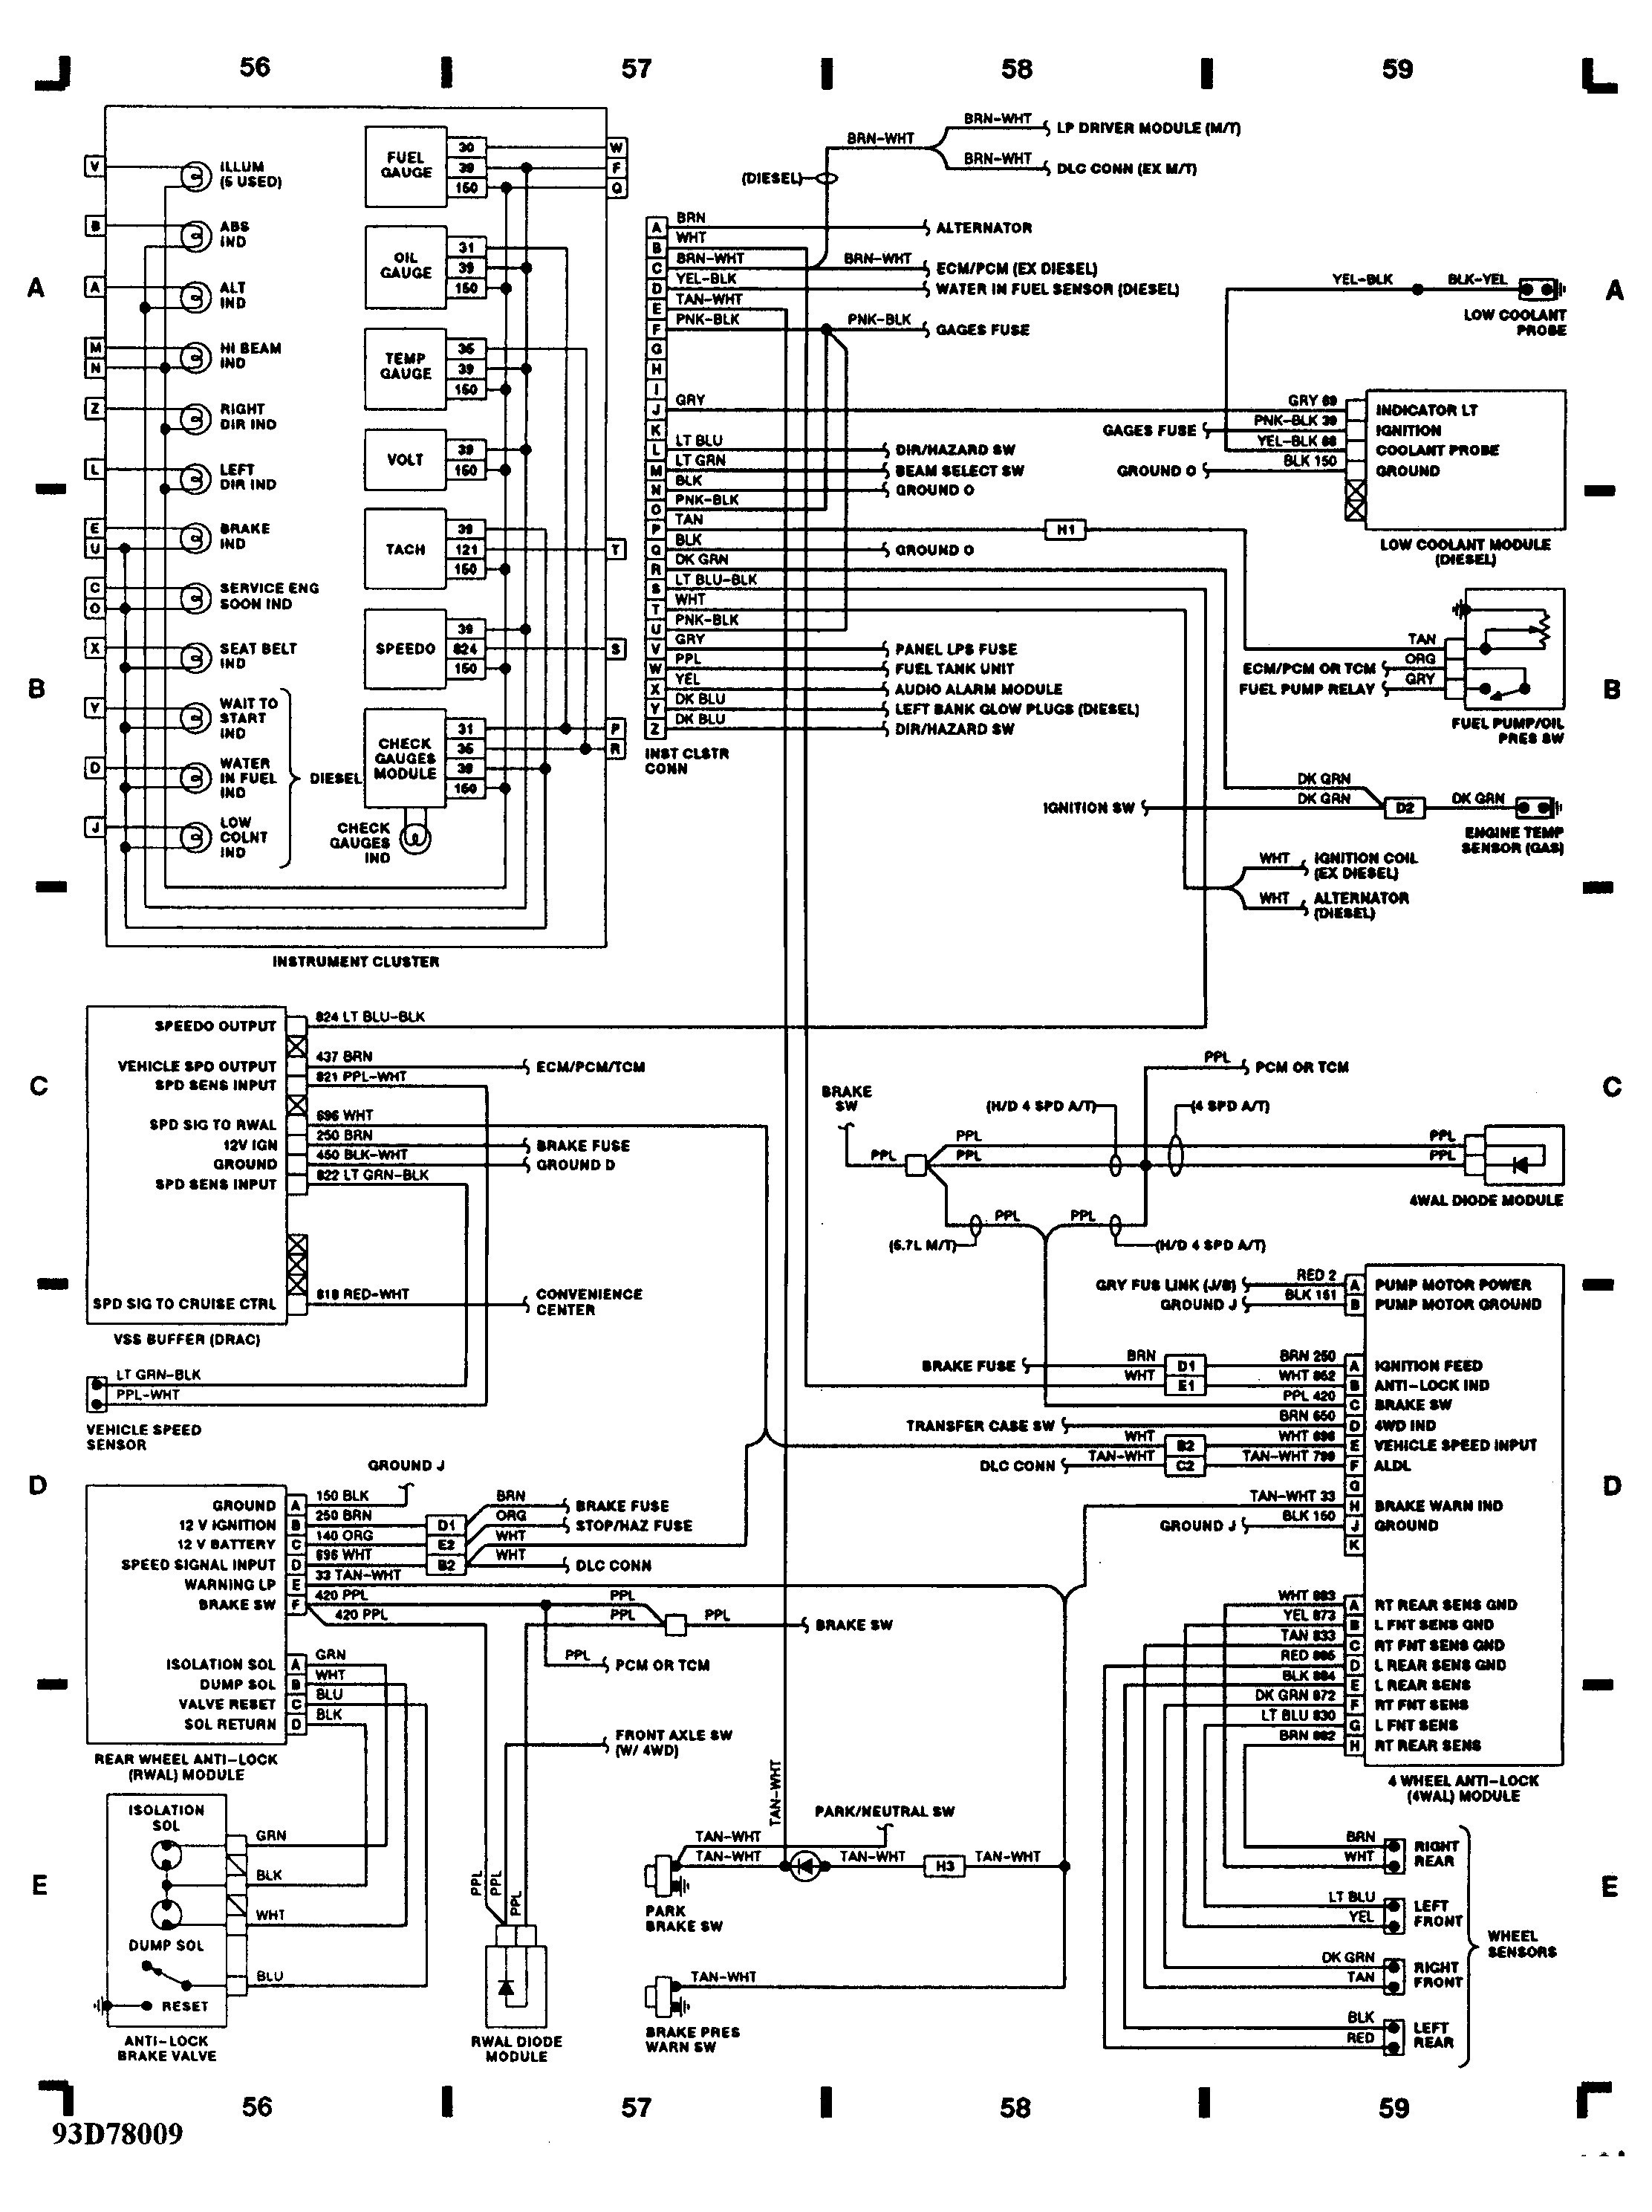 Ford 3 8 V6 Engine Timing Cover Diagram Electrical Wiring Diagrams Example Rh Huntervalleyhotels Co 2002 Mustang